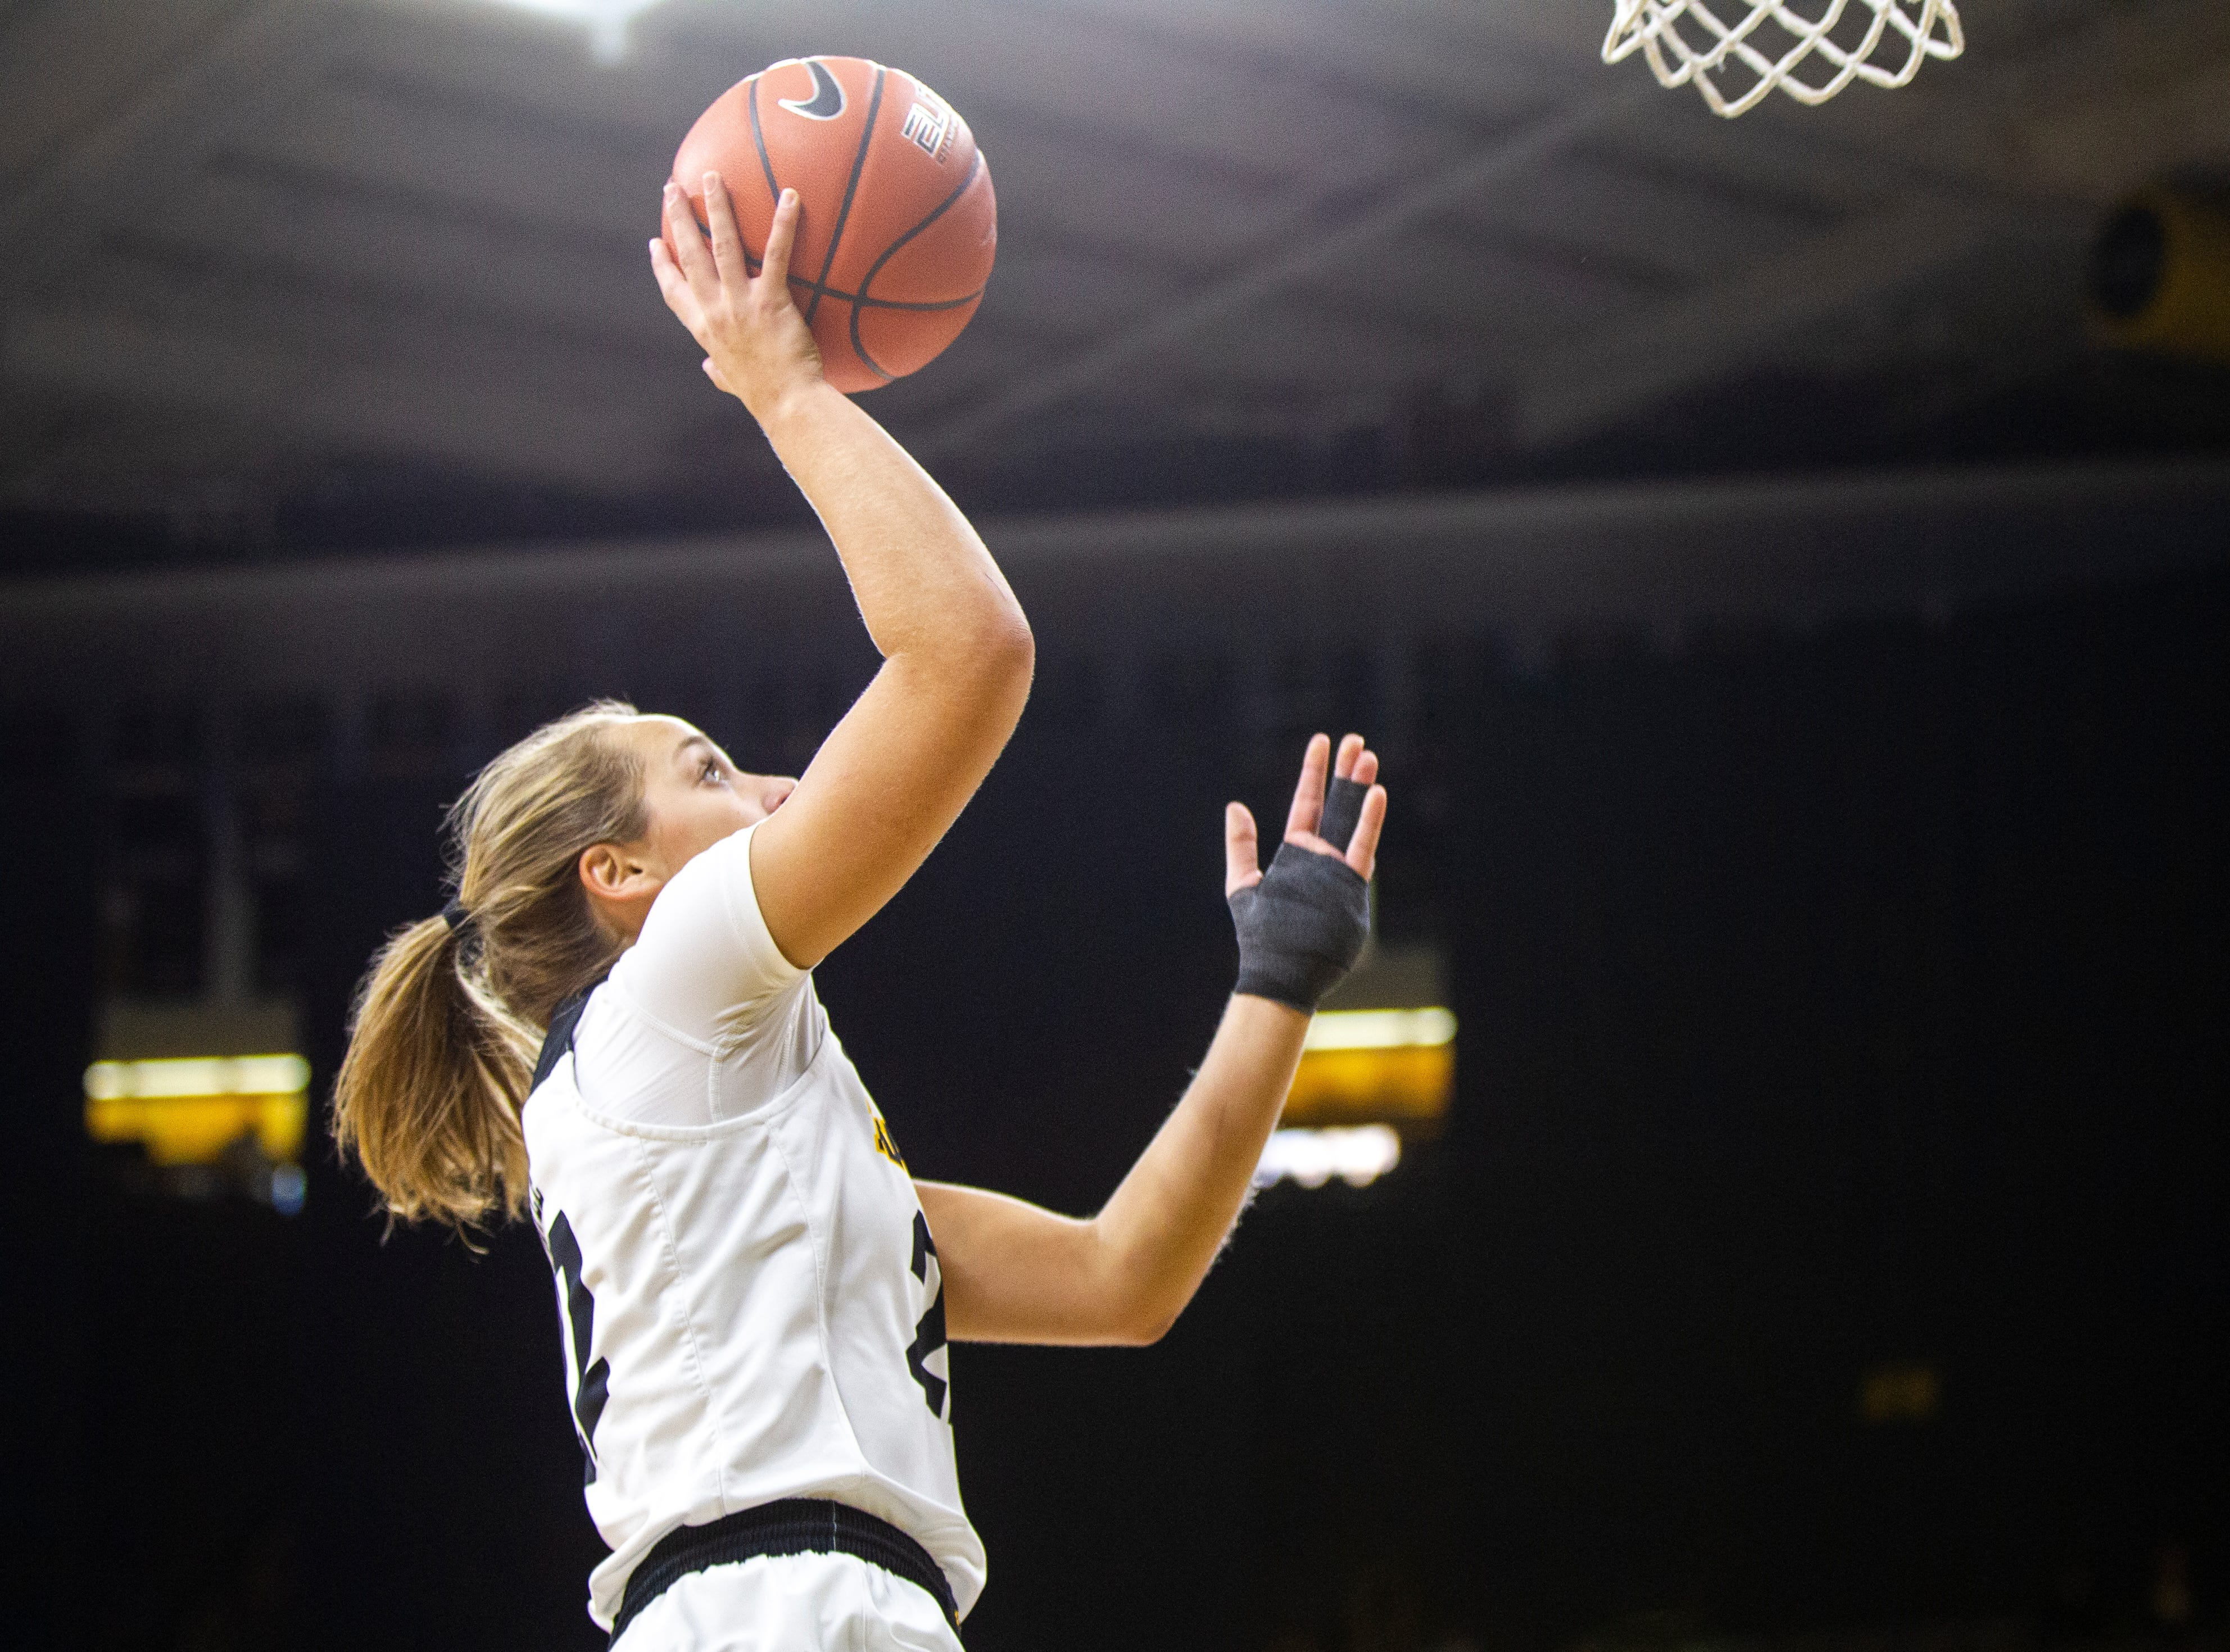 Iowa guard Kathleen Doyle (22) makes a basket during a NCAA women's basketball game on Saturday, Dec. 8, 2018, at Carver-Hawkeye Arena in Iowa City.